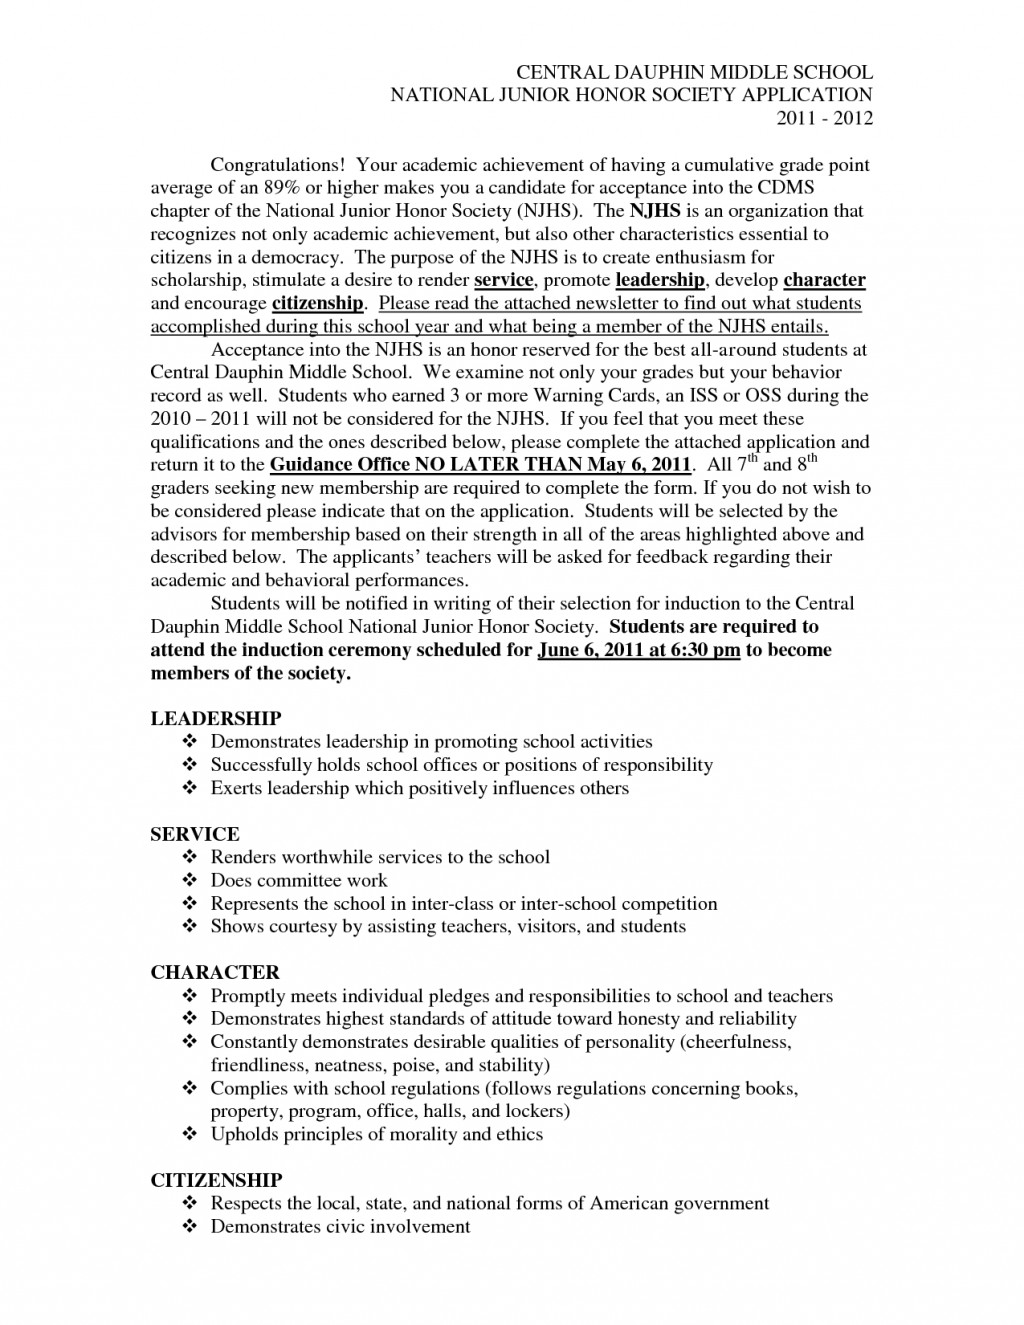 009 Essay Example National Honors Society Writing Introductions For Honor Essays L Unique Junior Leadership Sample Large